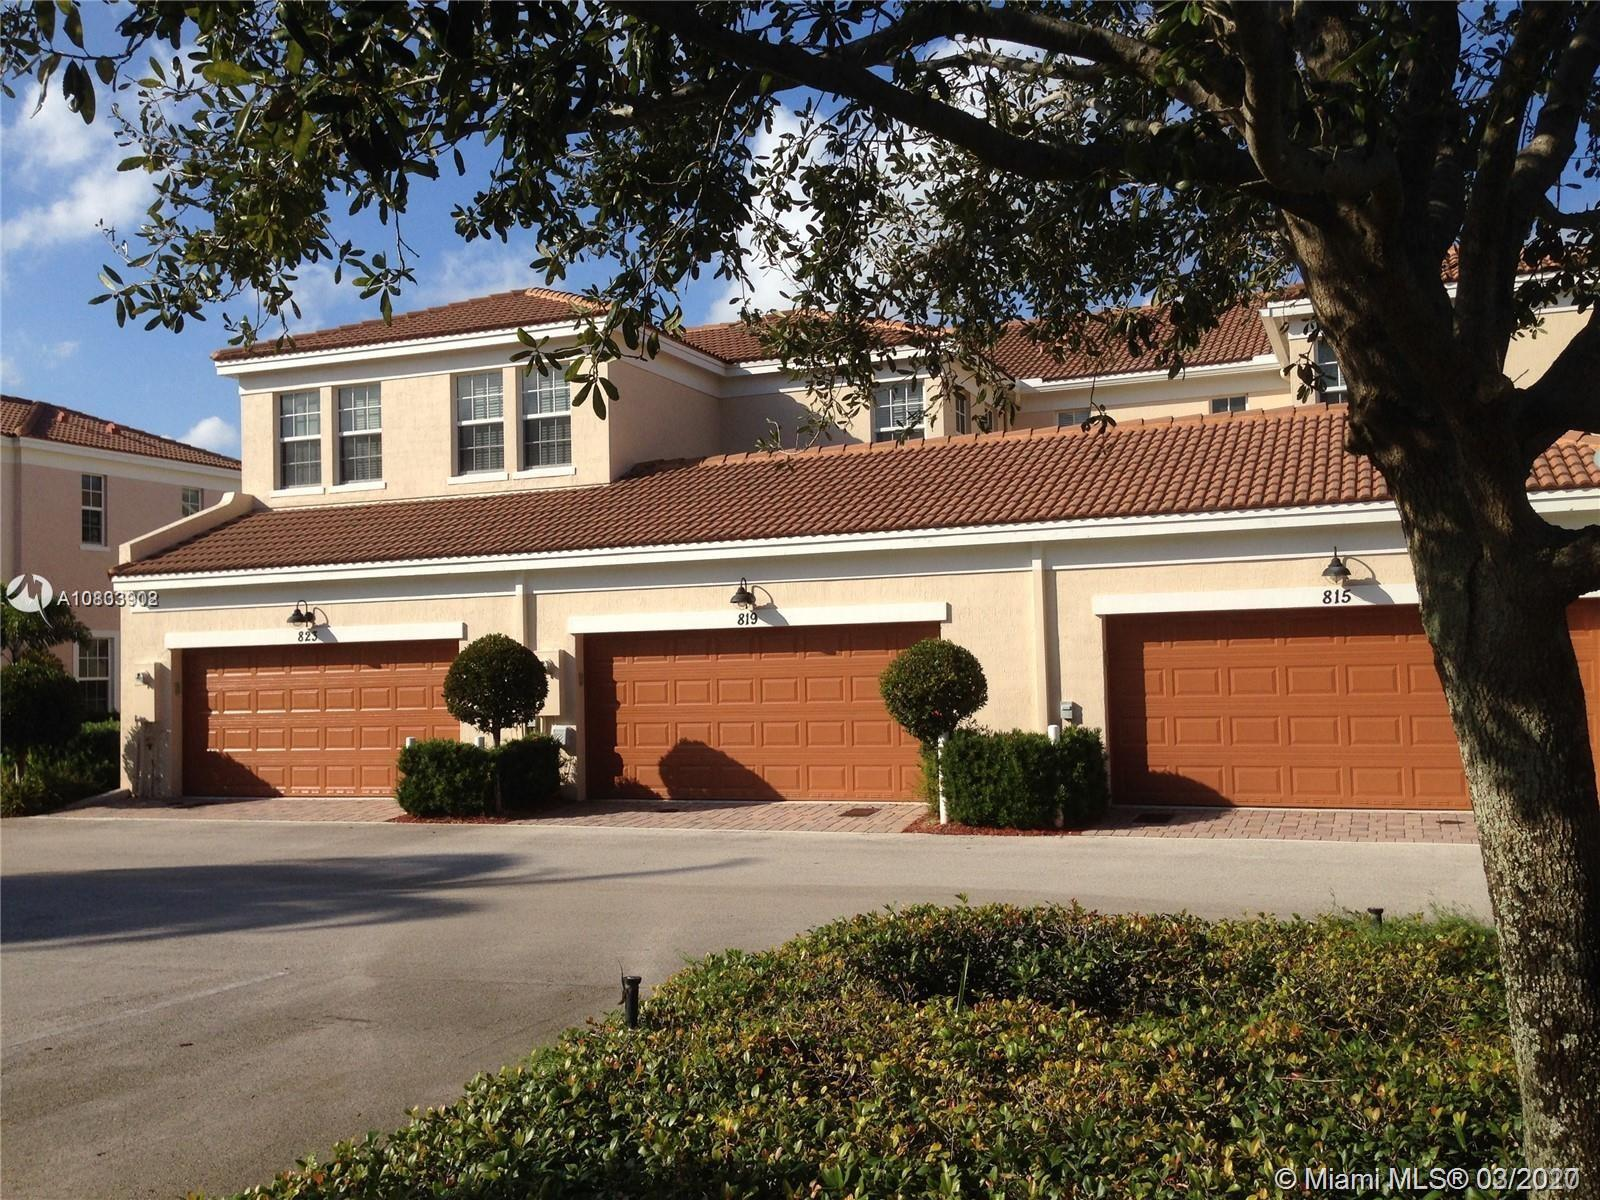 Nice townhouse in a good location community. Minutes from downtown Delray, Mizner Park, Best schools